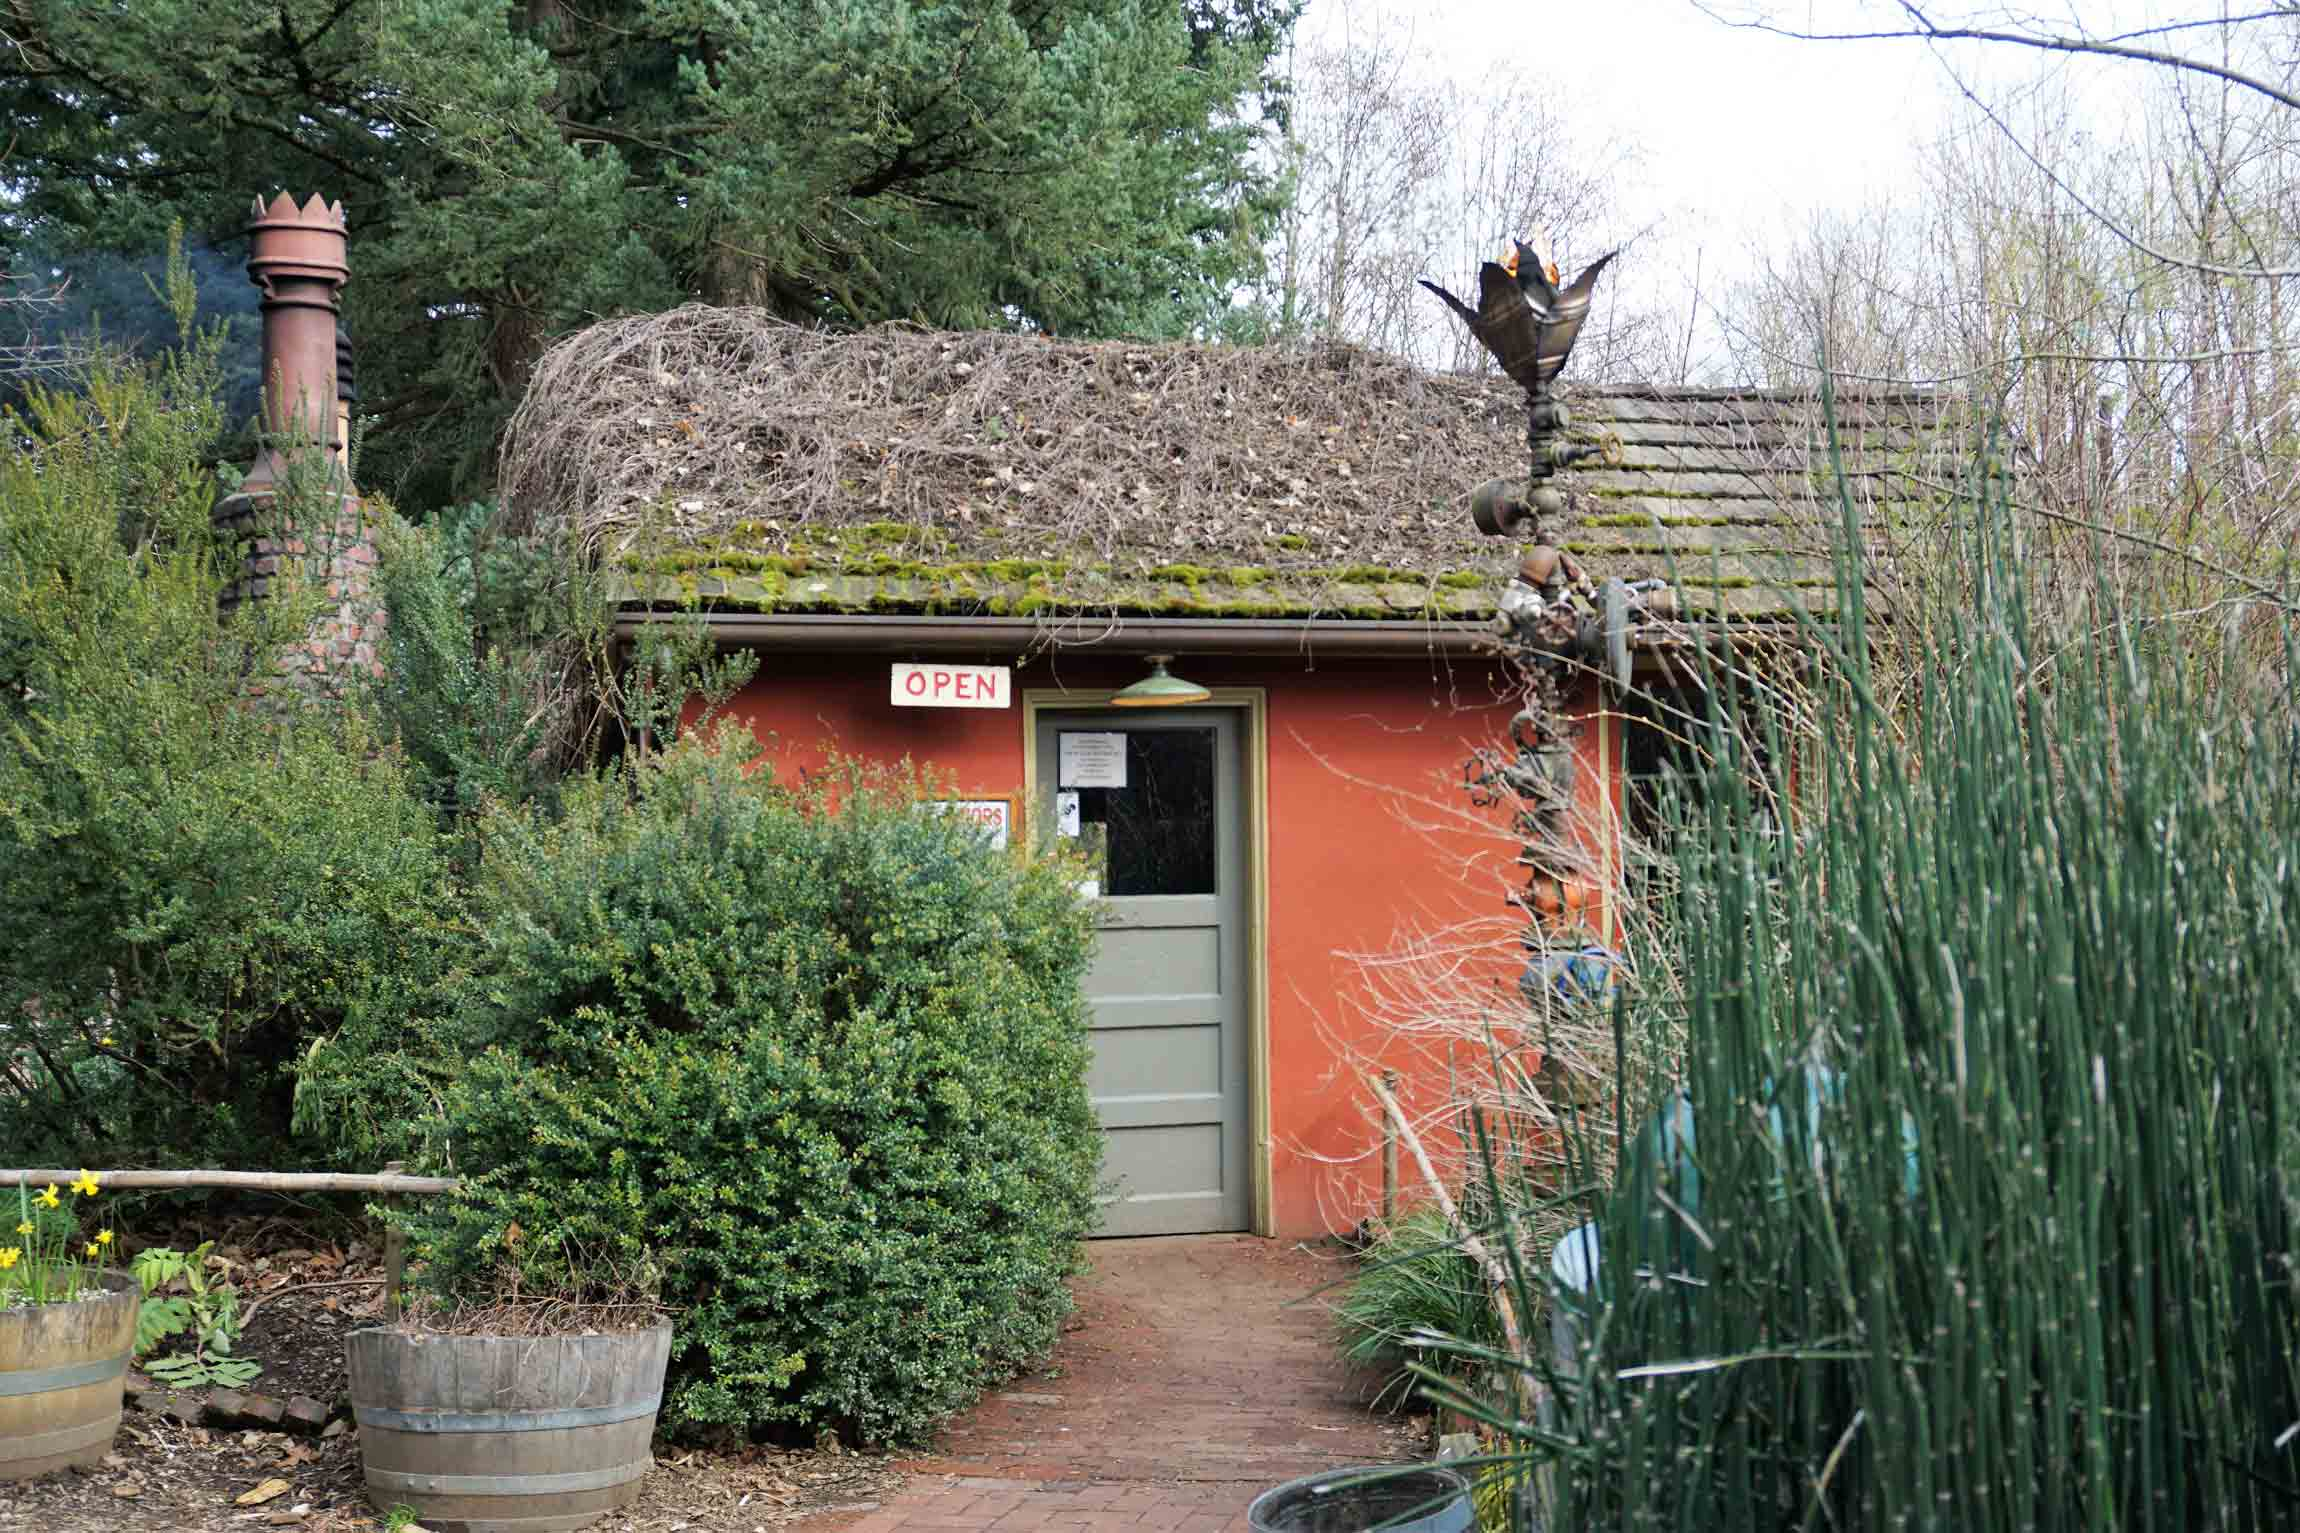 A photo of the Little Red Shed, a small building that serves as a bar on the property of McMenamin's Edgefield in Troutdale Oregon